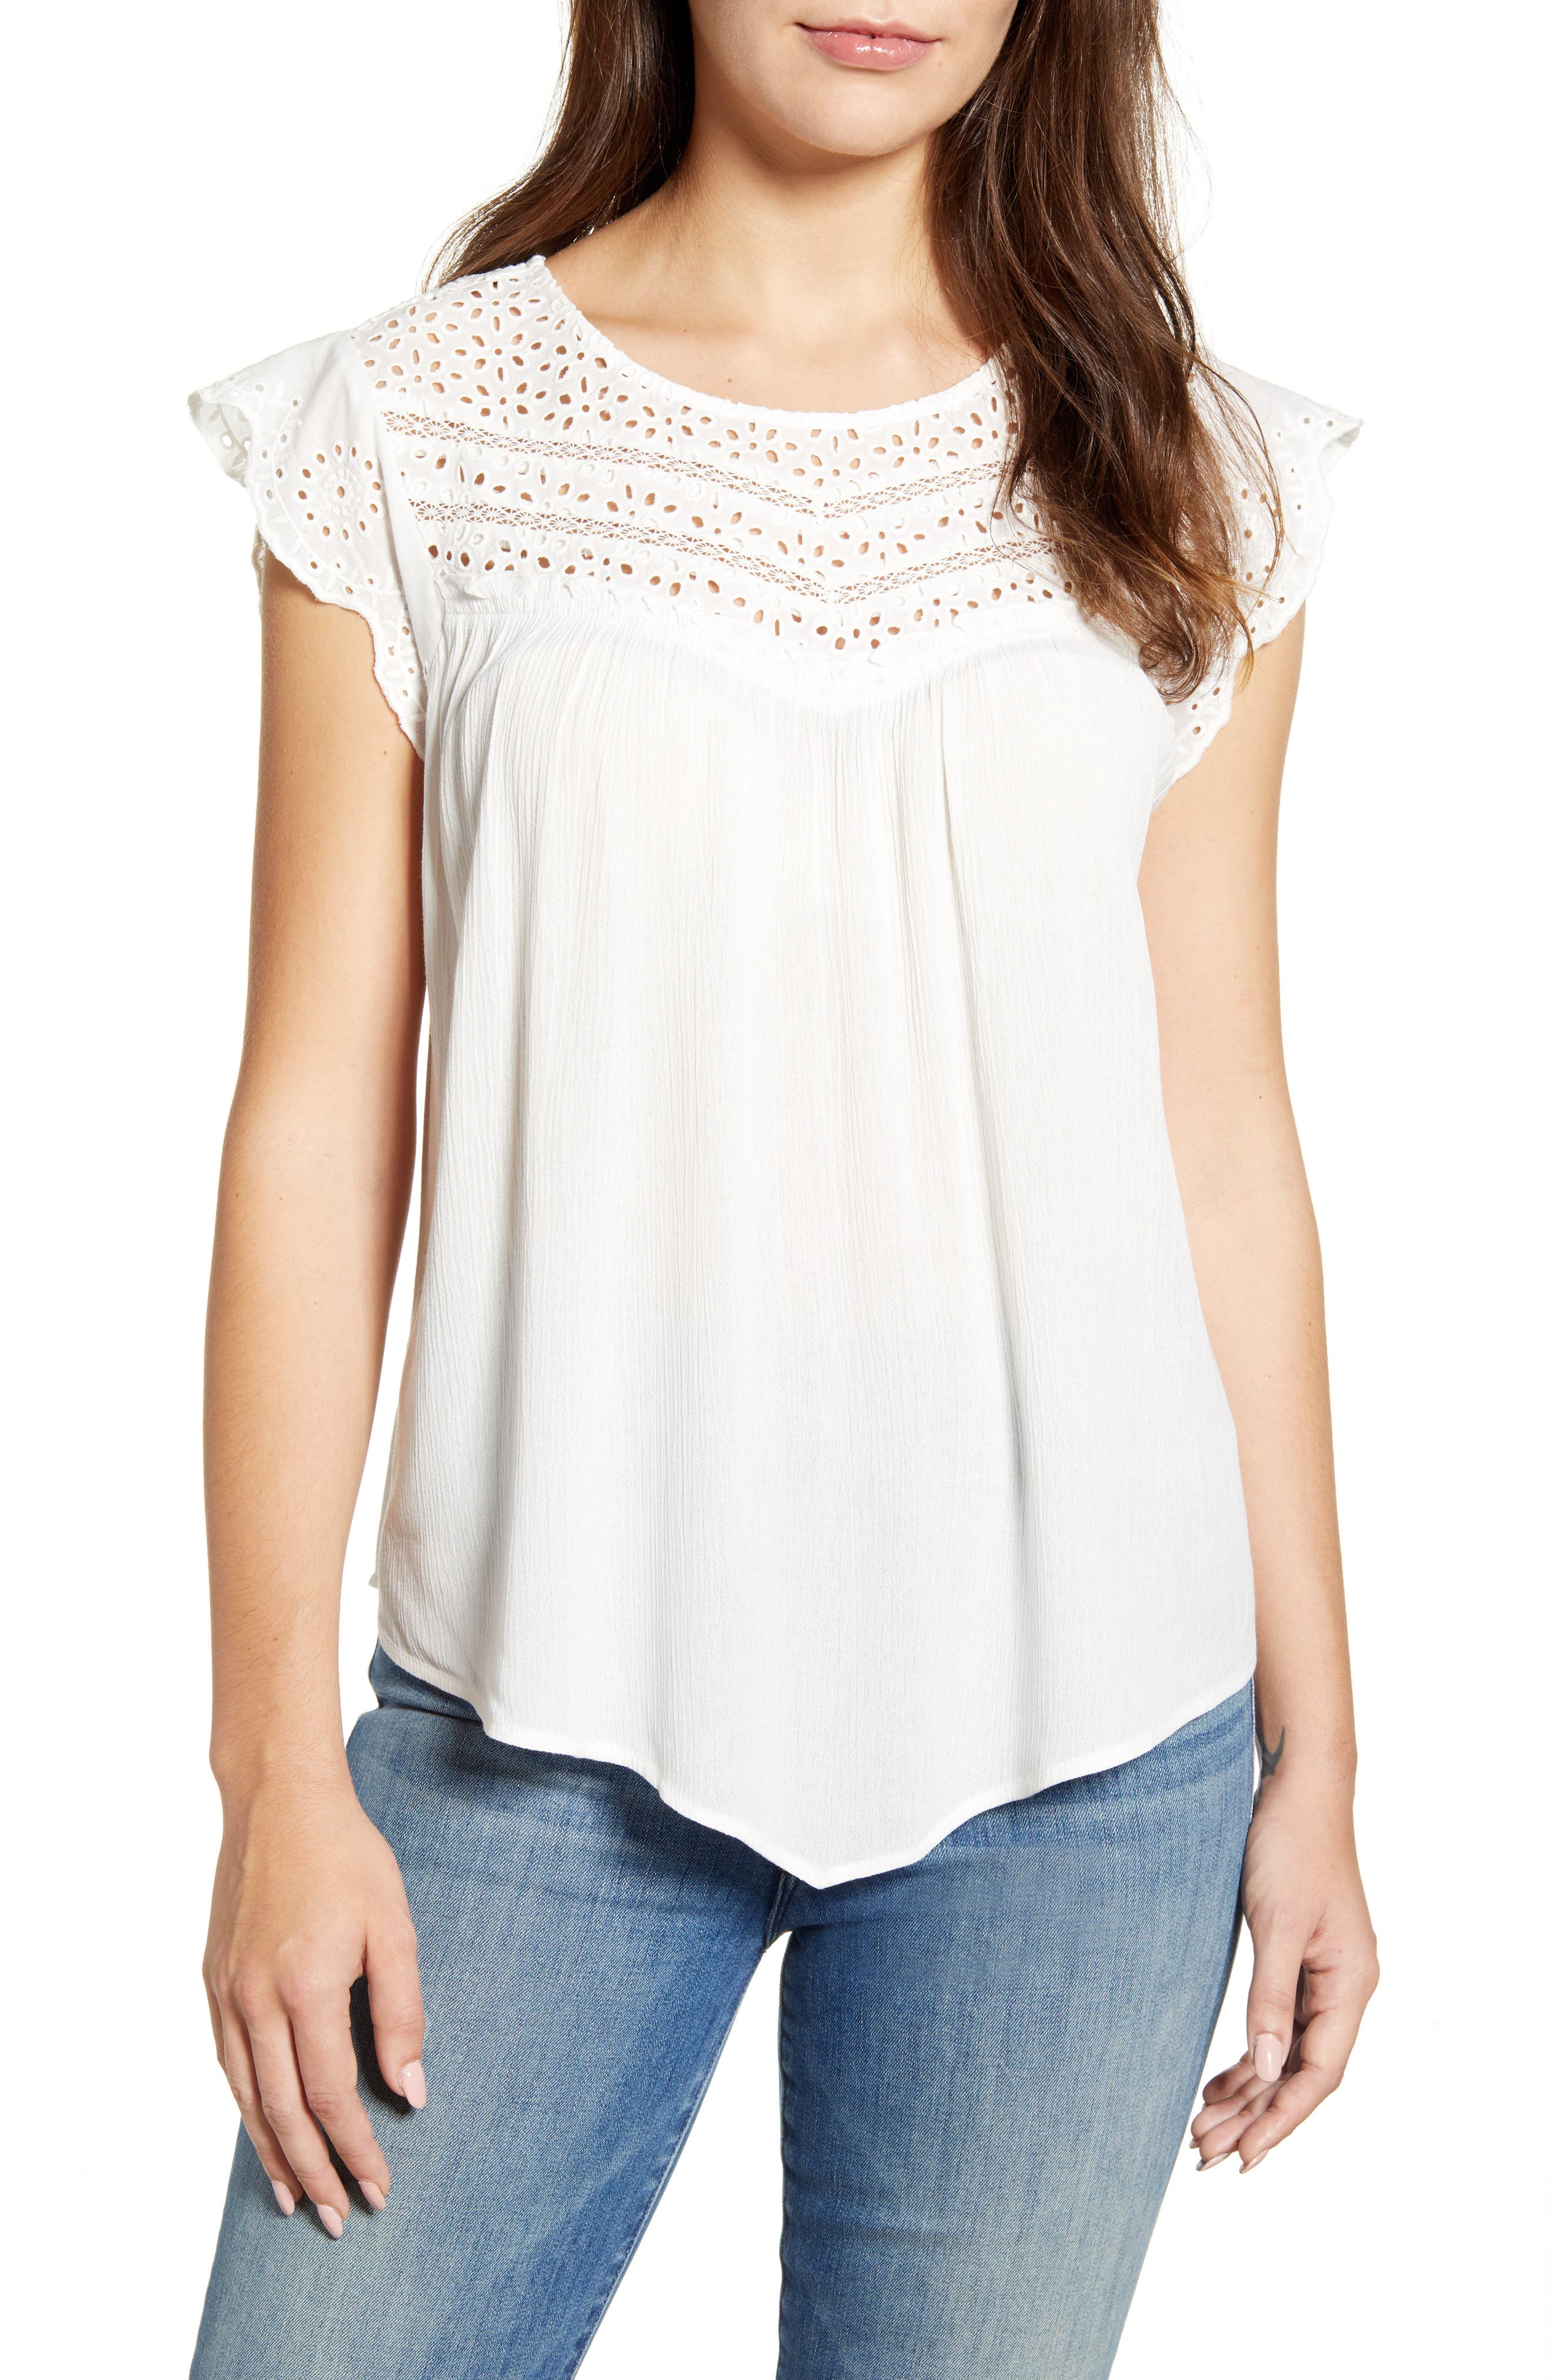 An eyelet yoke and a flowy fit add boho vibes to this gauzy top, styled with cap sleeves and ready for all your casual looks. Style Name: Wit & Wisdom Eyelet Yoke Gauze Cap Sleeve Top (Nordstrom Exclusive). Style Number: 6011210. Available in stores.